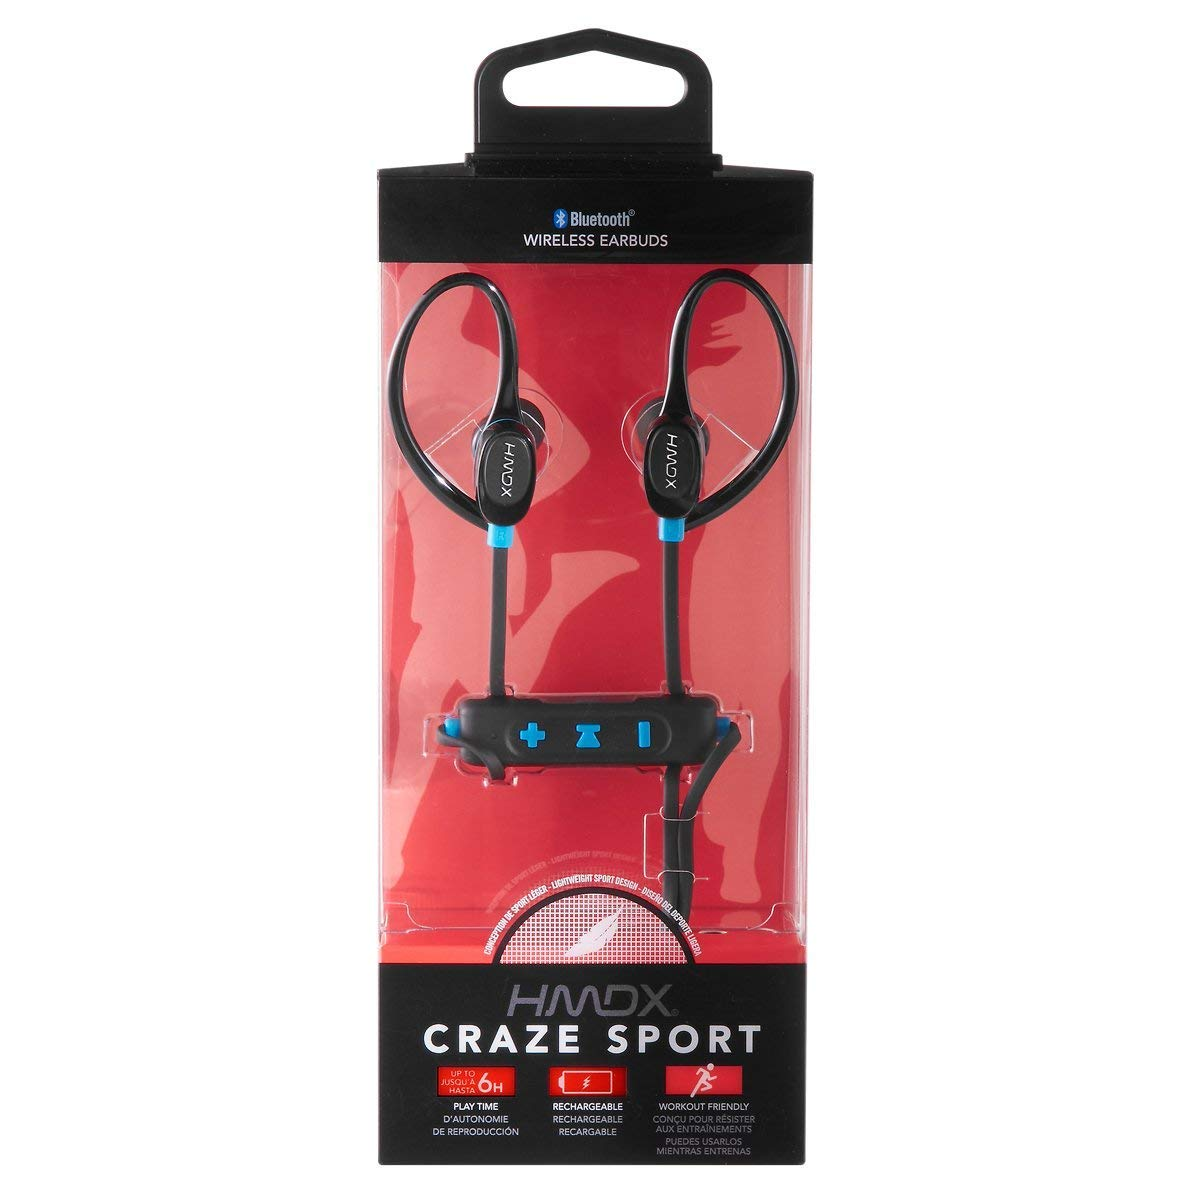 e885cac0150 Amazon.com: HMDX Craze Active Sport Bluetooth Wireless Earbuds, Sweatproof  earphone, Ear hook clip, Hands-Free Calling w/Mic Controls, 6 Hours  Playtime, ...